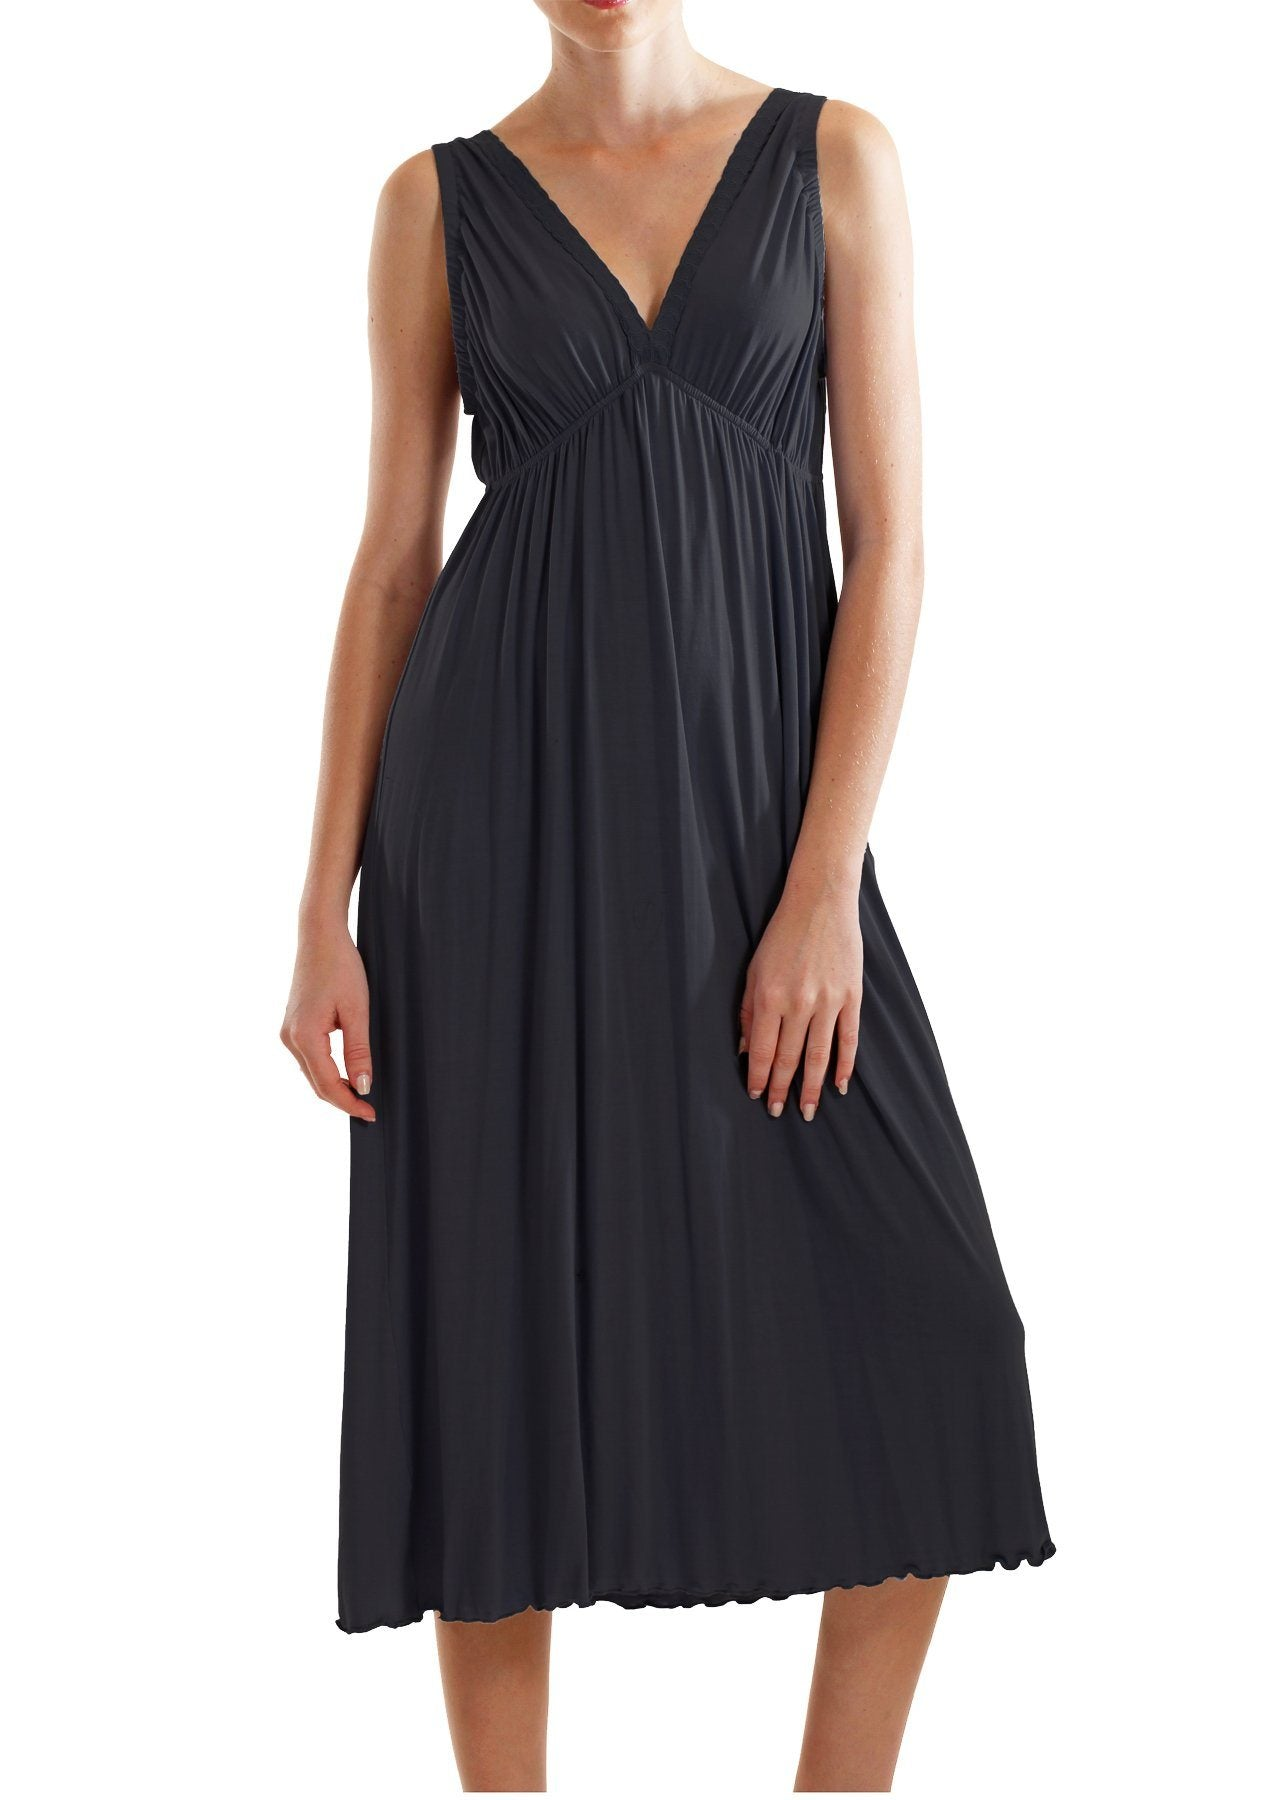 Celia Gown - Black Mystique Intimates